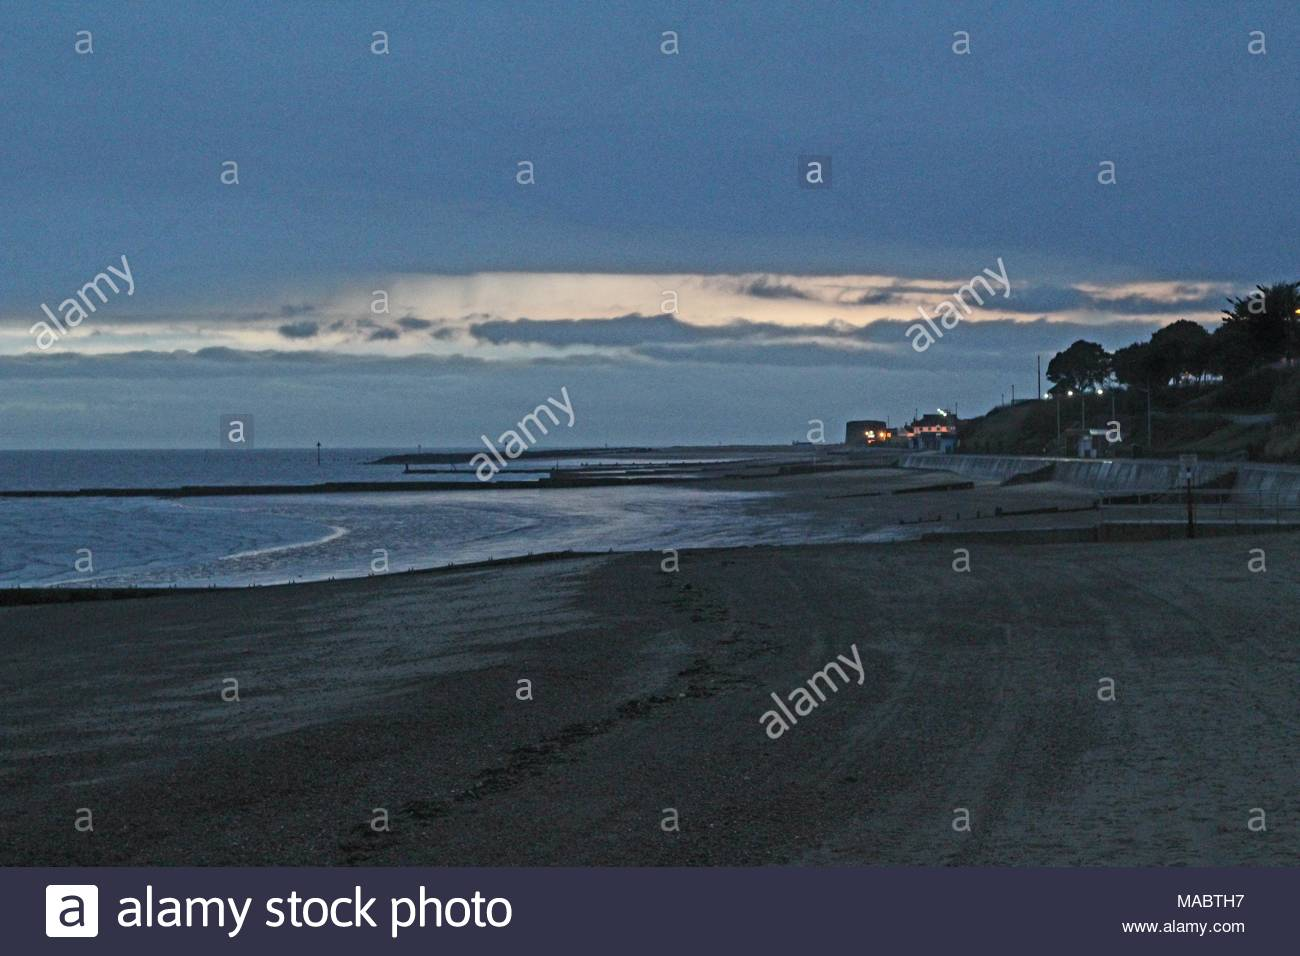 Beachside à Clacton On Sea, Essex avant le crépuscule, printemps 2018. L'espace pour copier. Photo Stock